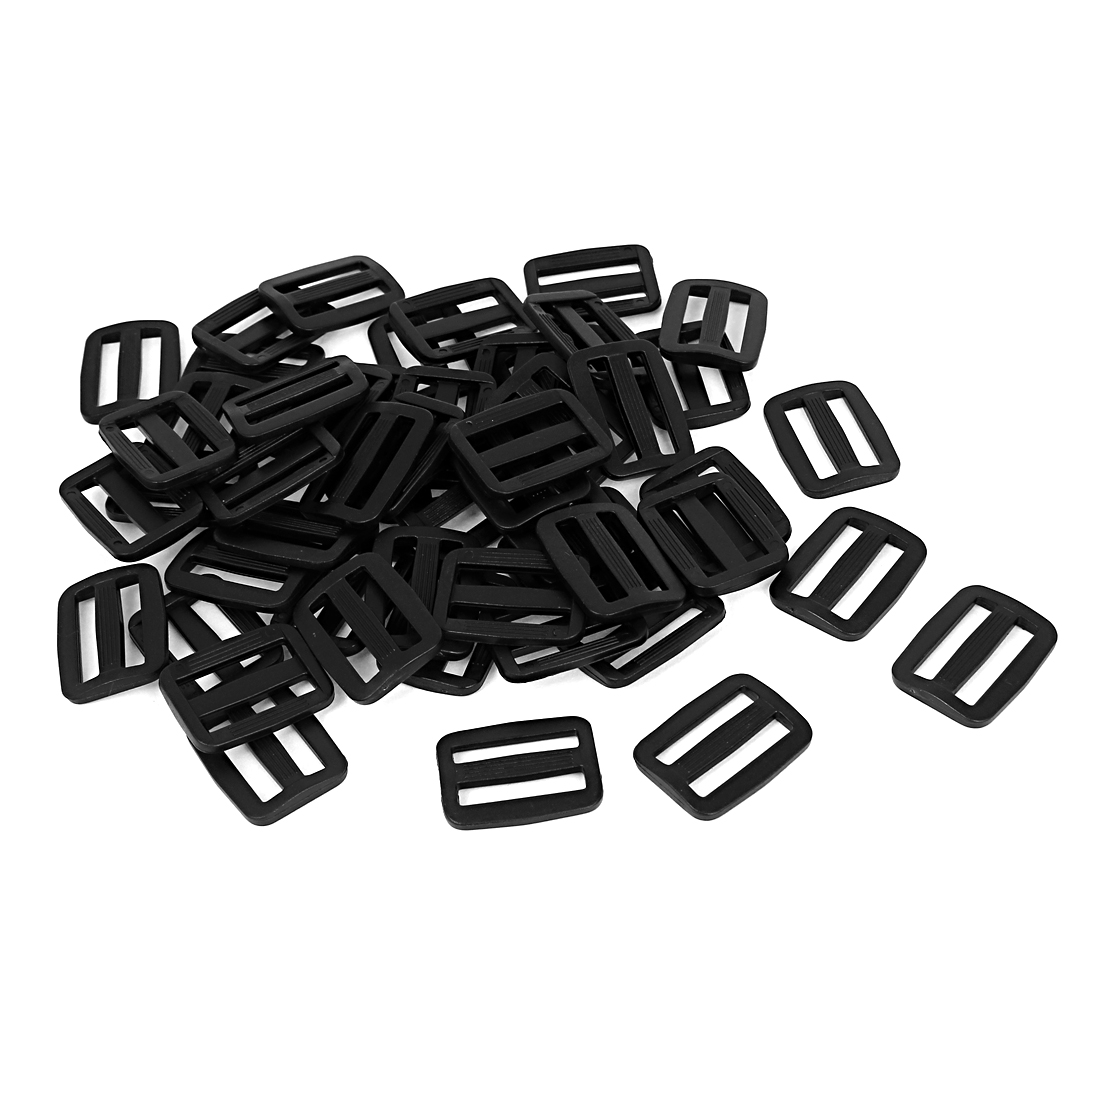 50 Pcs Black Hard Plastic Slide Rectangle Buckle Luggage Bag Replacement 2.5CM